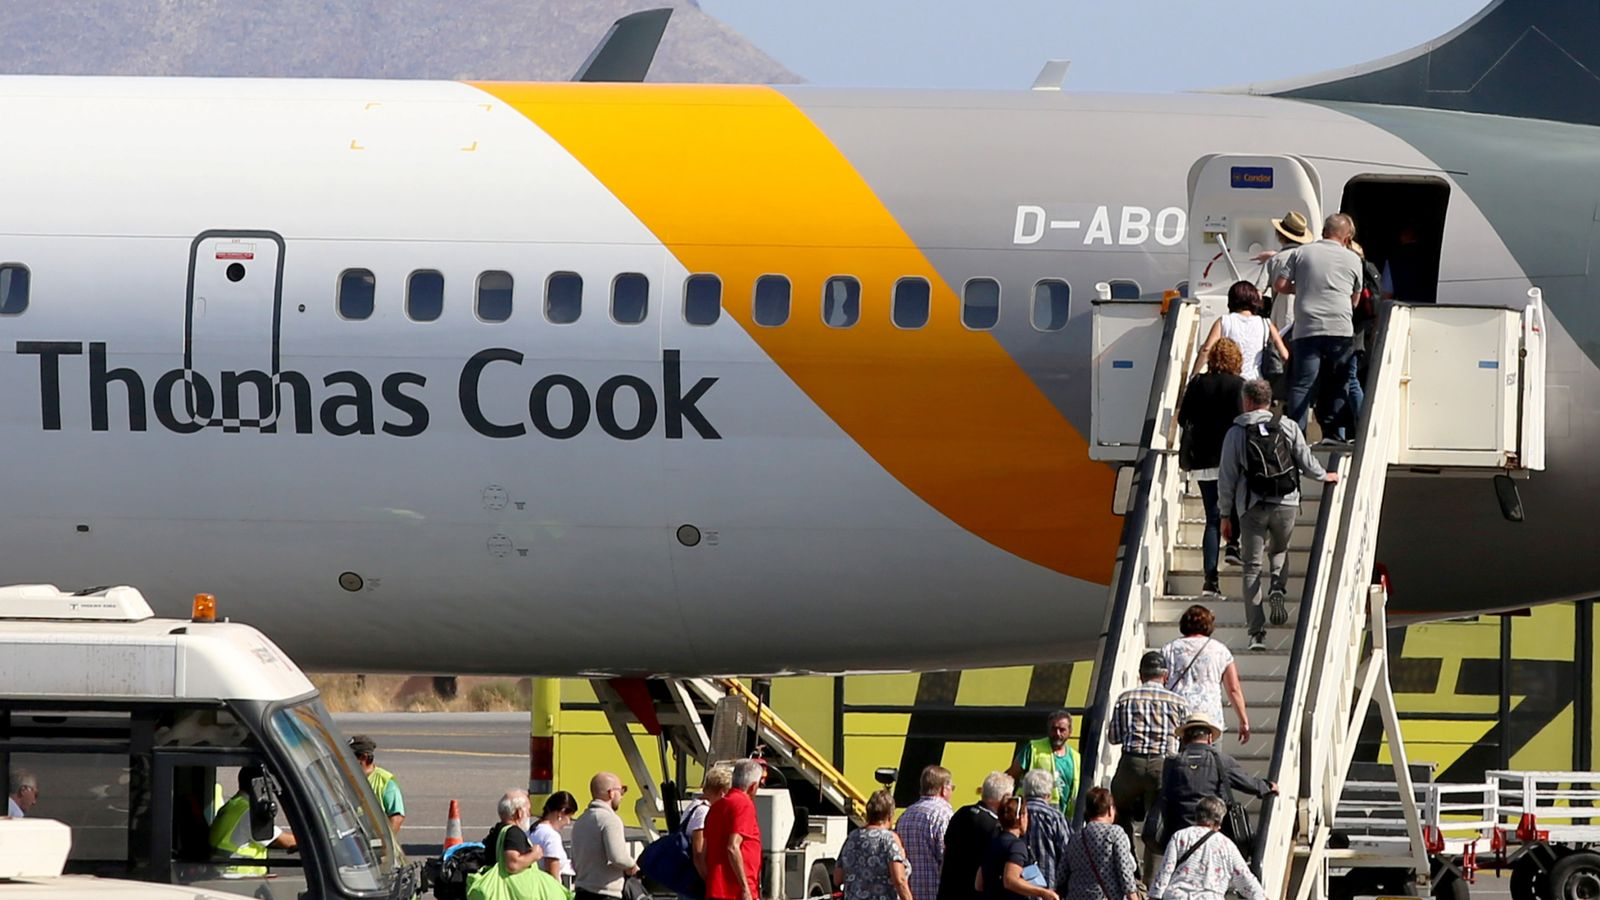 UK to copy Germany with new law after Thomas Cook collapse